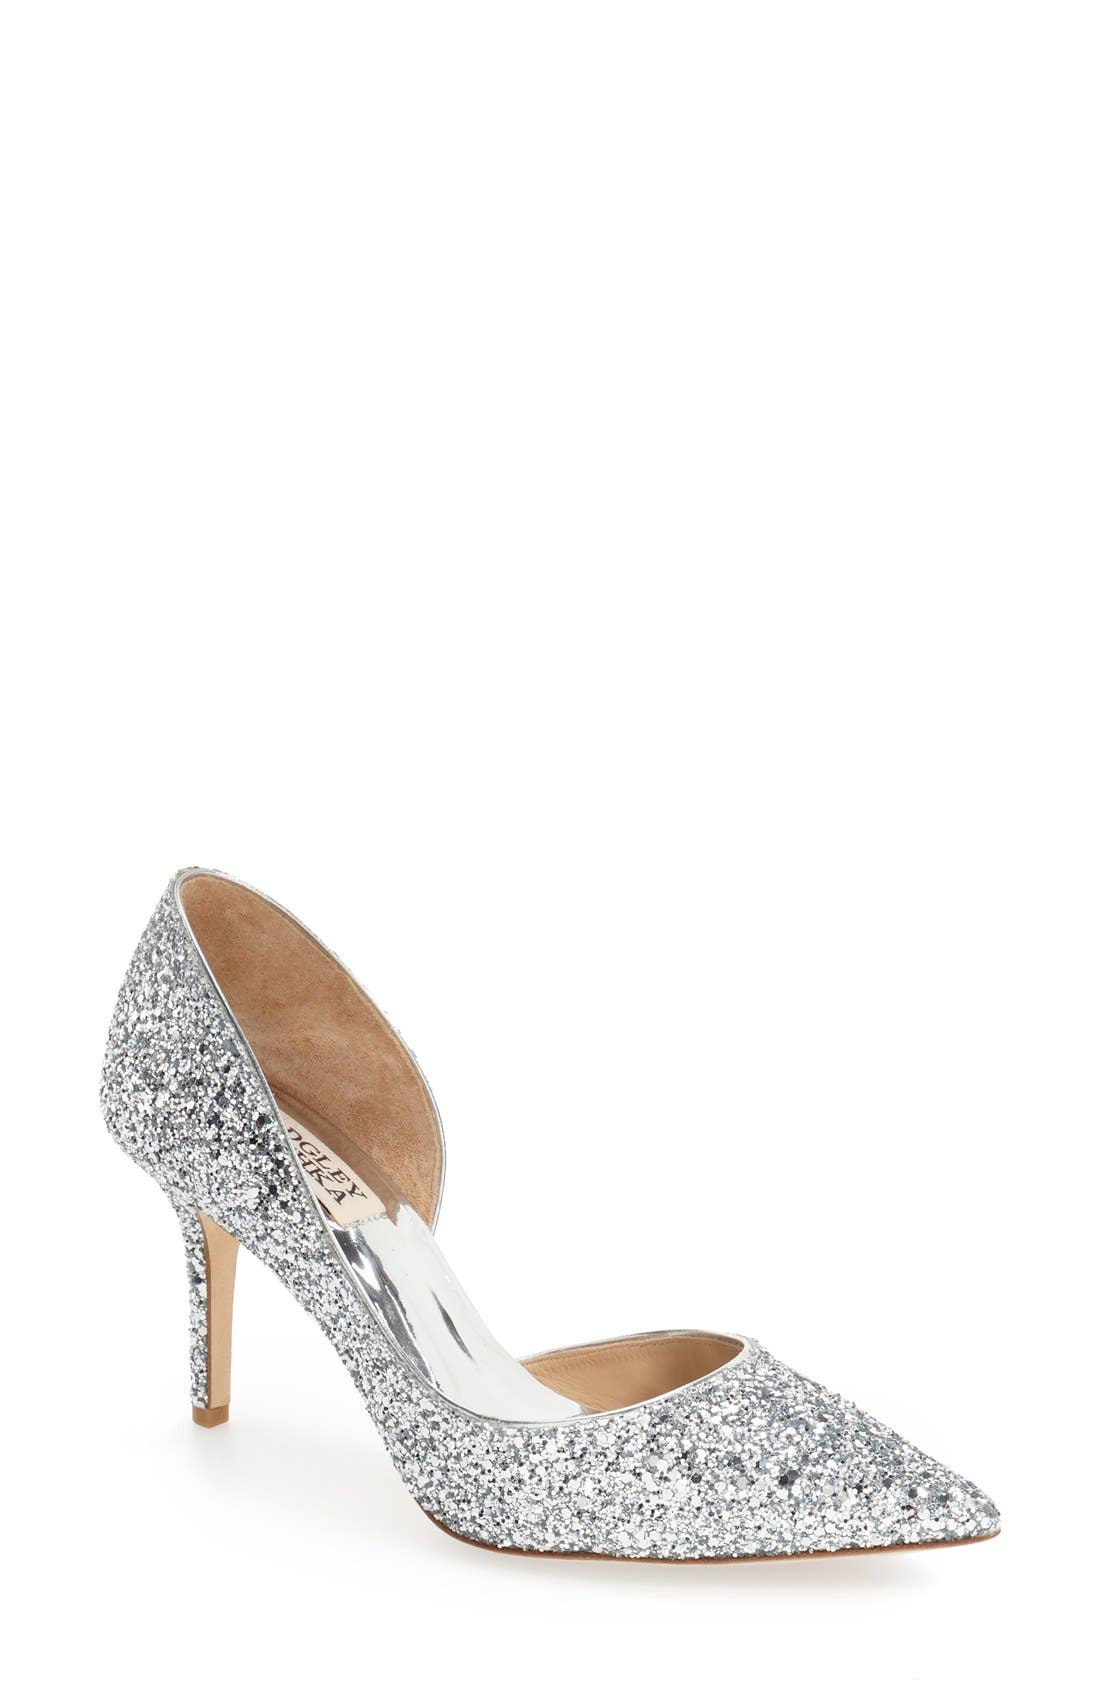 Alternate Image 1 Selected - Badgley Mischka 'Daisy' Embellished Pointy Toe Pump (Women)